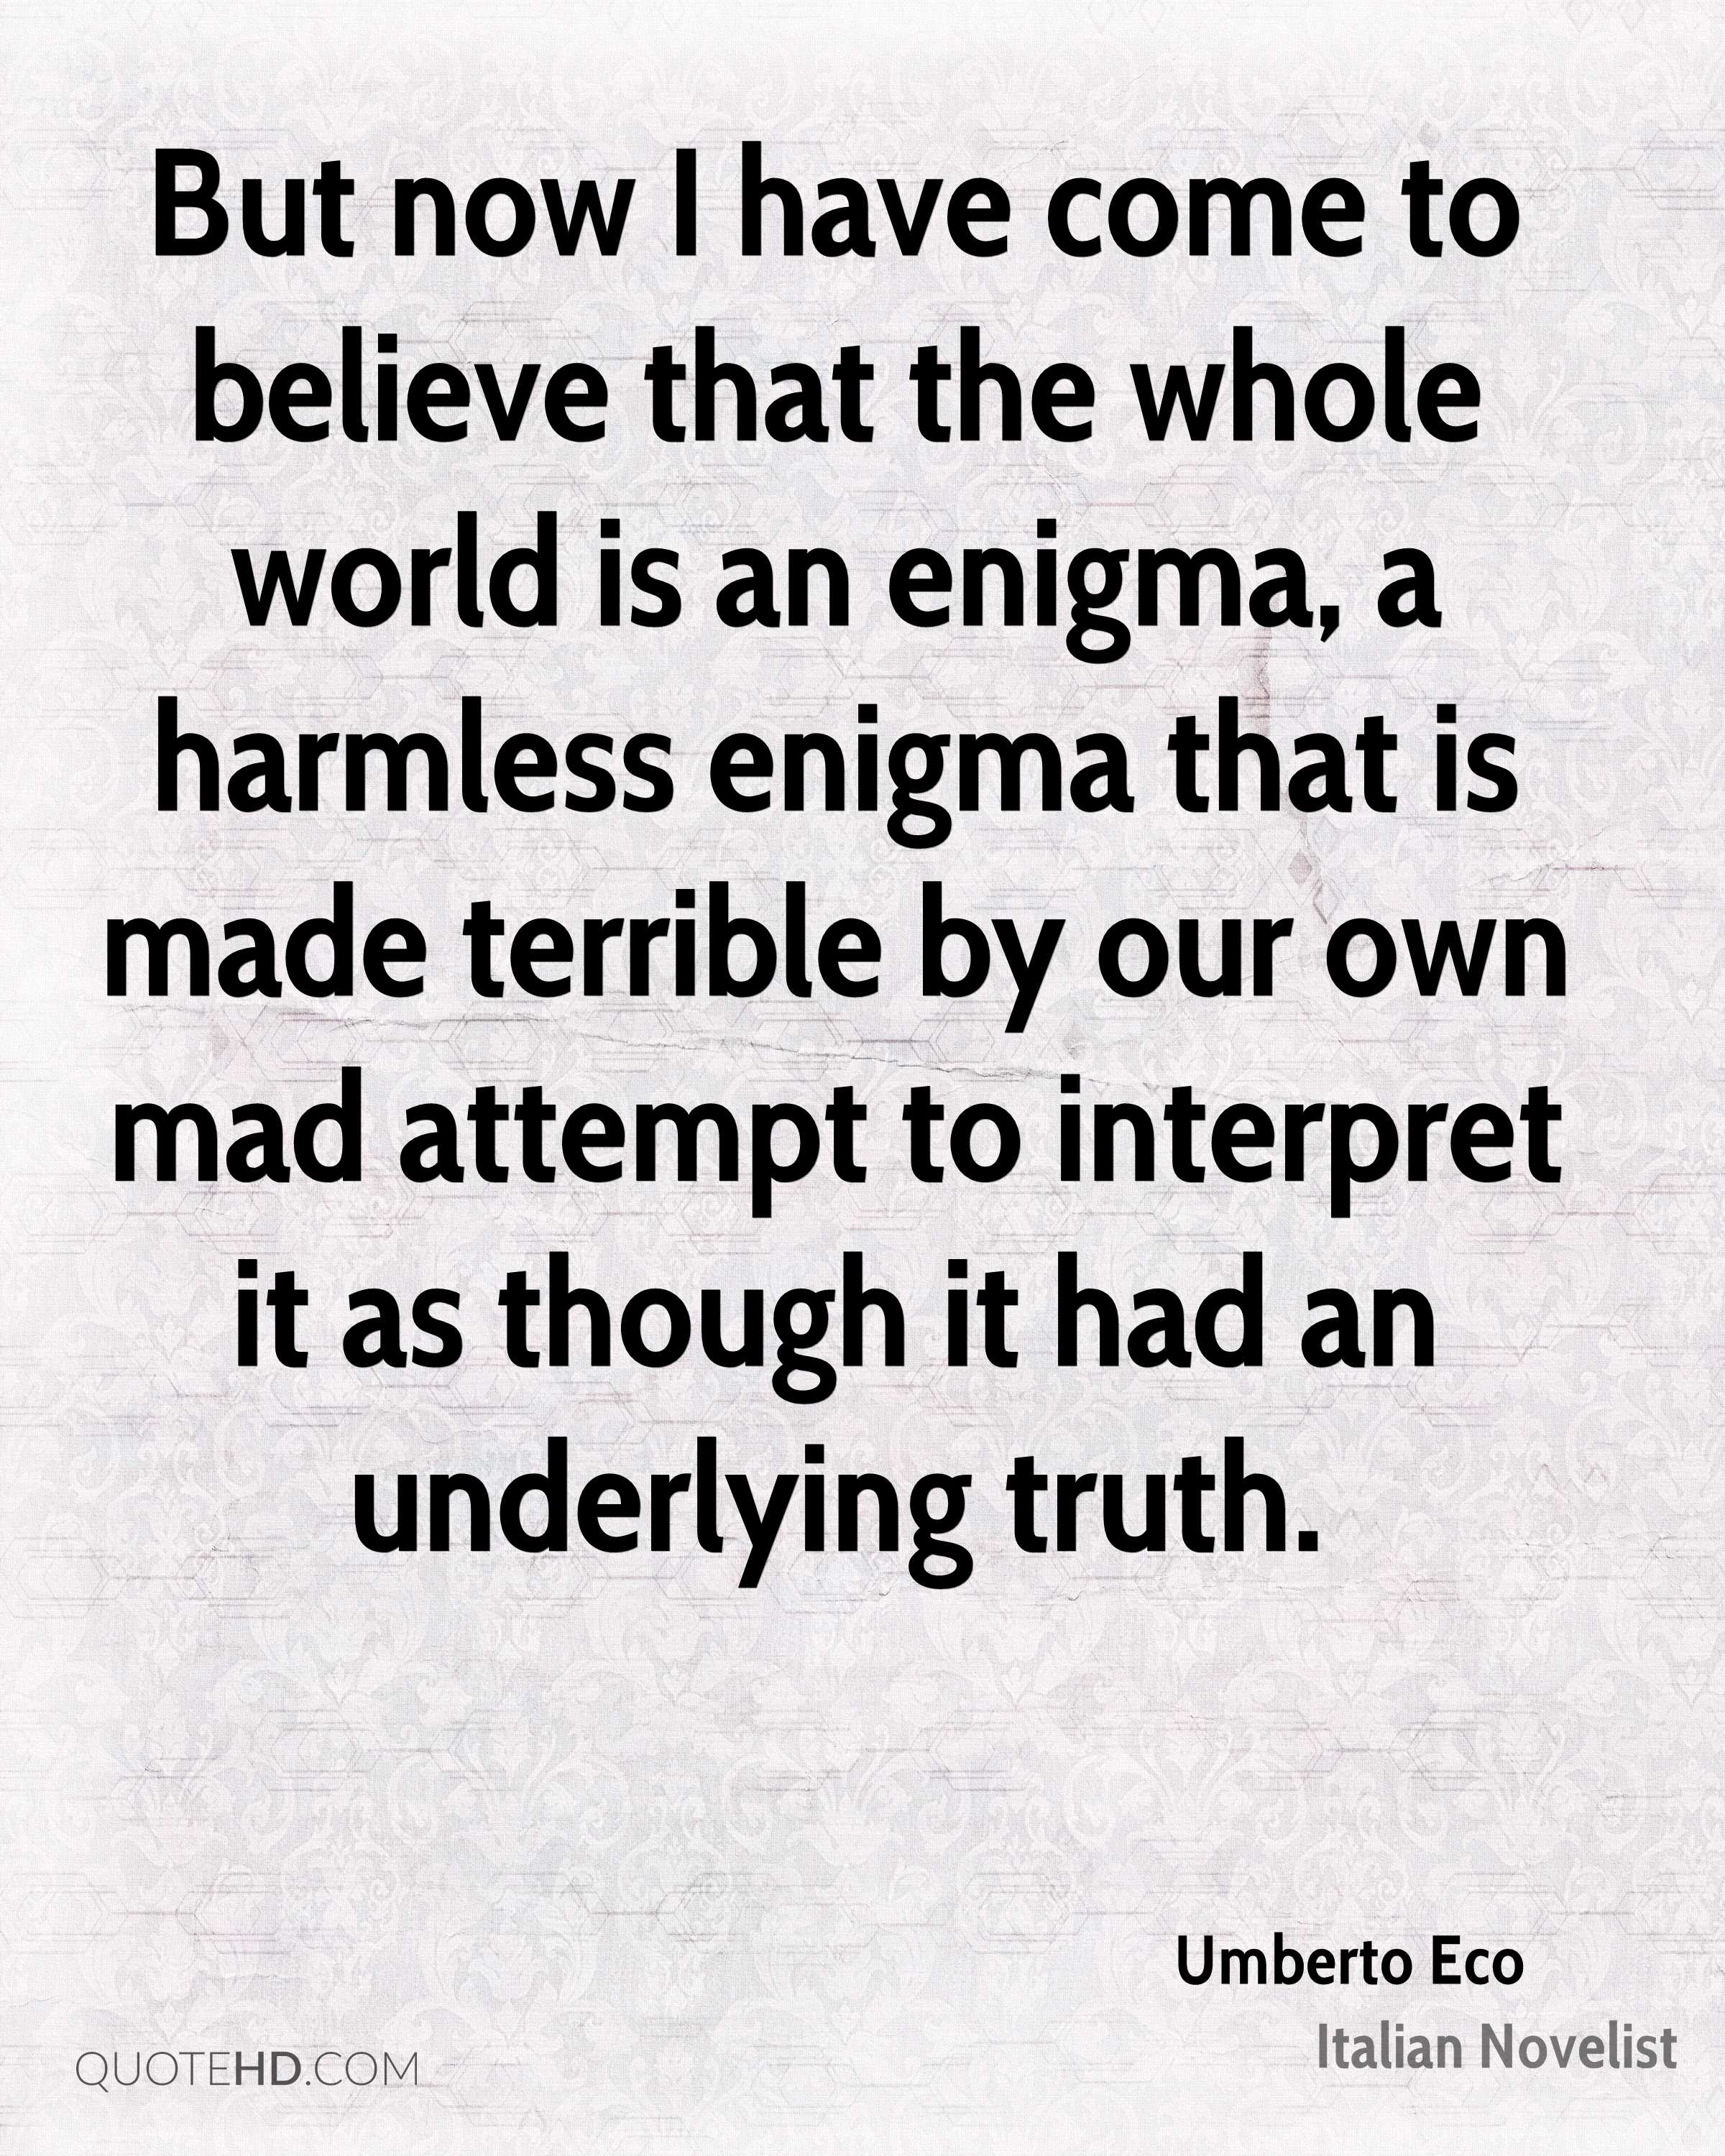 But now I have come to believe that the whole world is an enigma, a harmless enigma that is made terrible by our own mad attempt to interpret it as though it had an underlying truth.